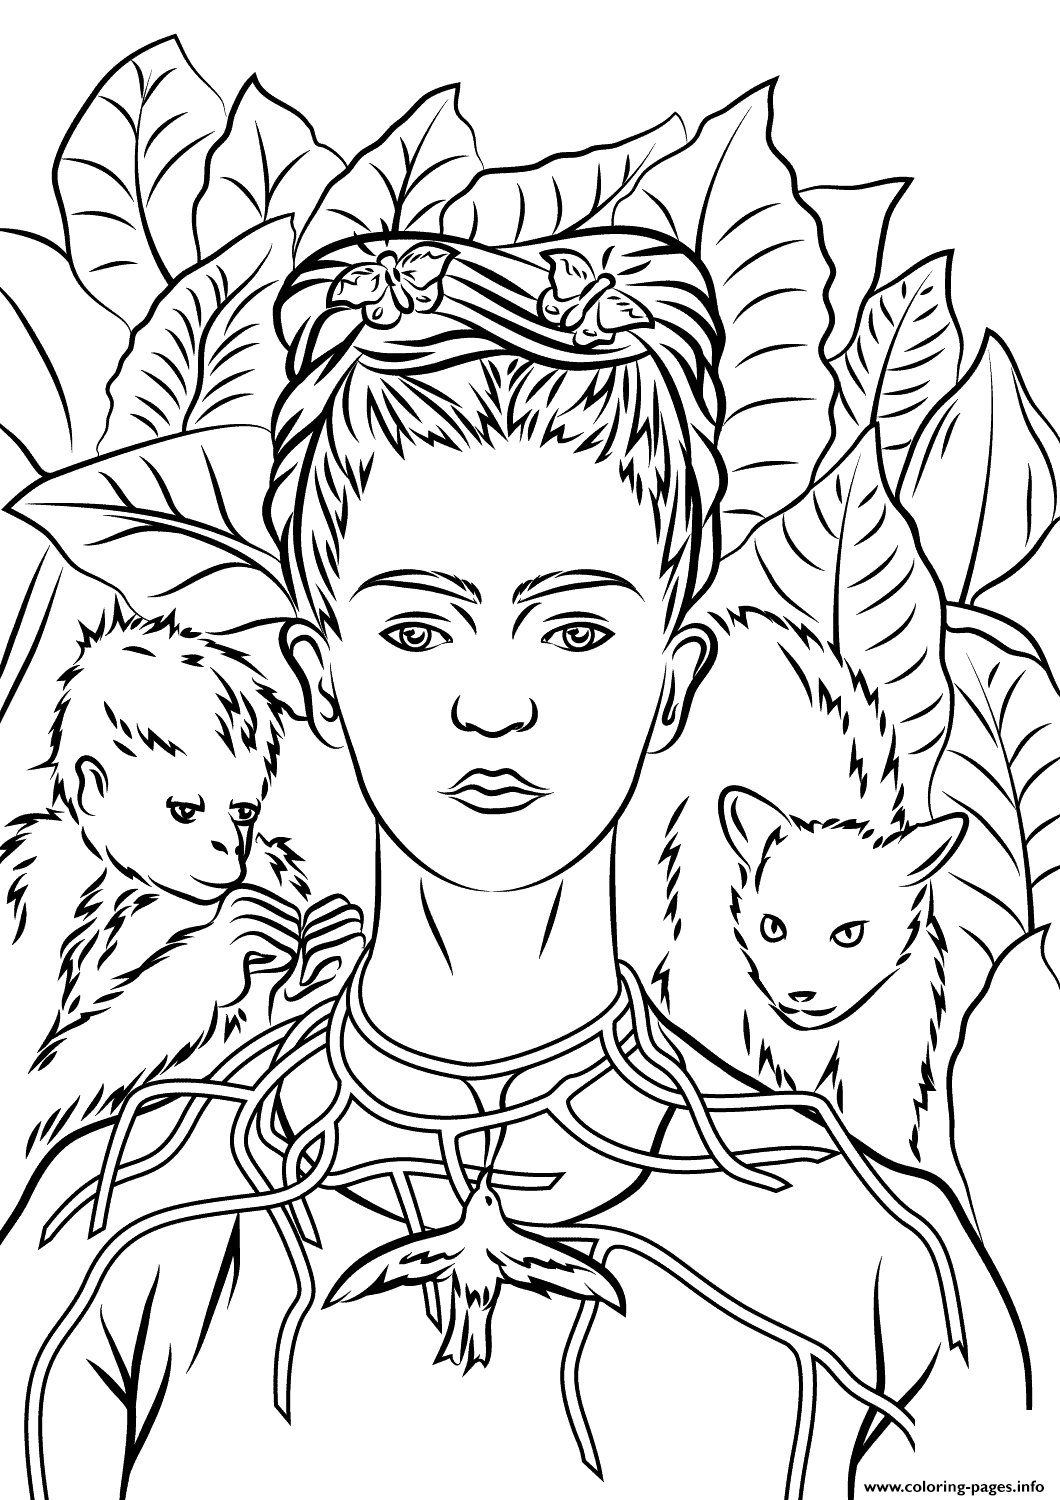 Frida Kahlo Coloring Page Google Suche Picasso Coloring Kahlo Paintings Frida Kahlo Paintings